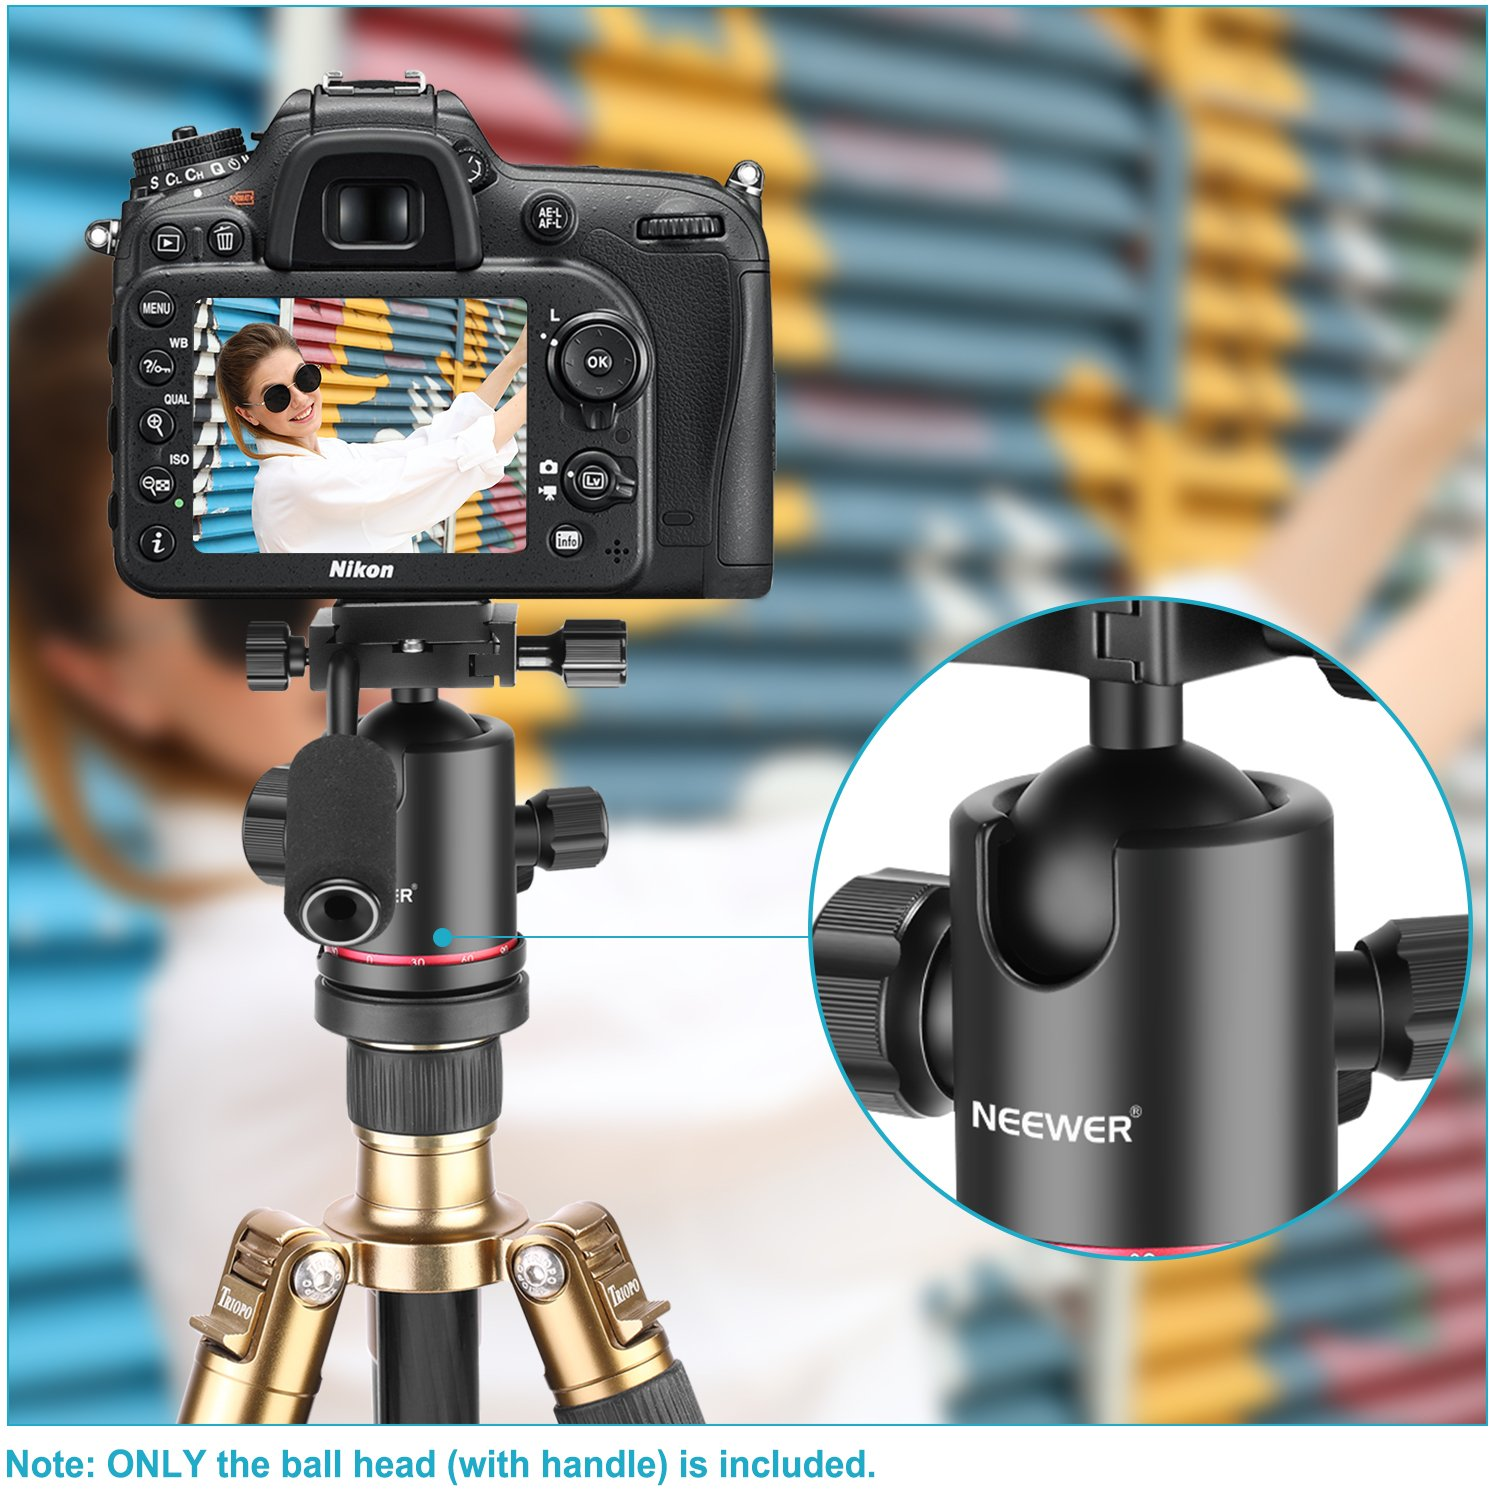 Telescope,Max Load 22lb//10kg DV D30 Panoramic Ball Head with Handle All Metal CNC Ballhead Camera Mount INNOREL Tripod Heads with Two Quick Release Plates and Phone Clip for Monopod Camcorder DSLR